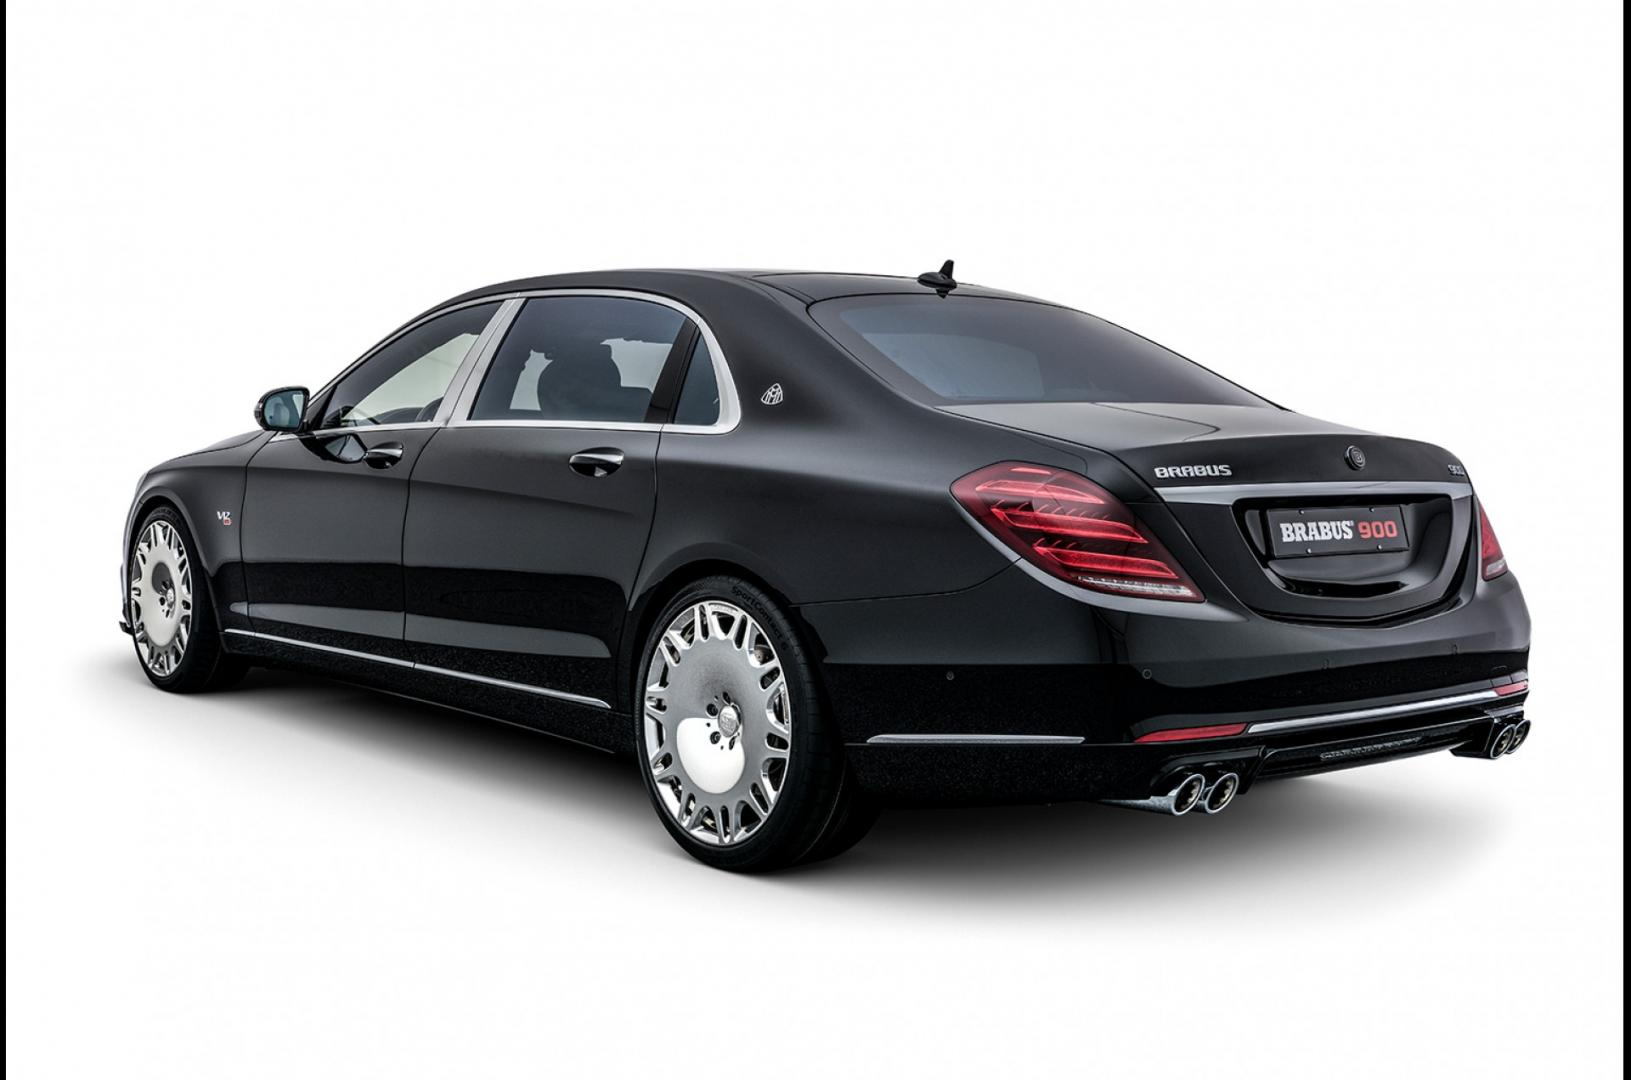 Mercedes-Maybach S650 L Brabus 900